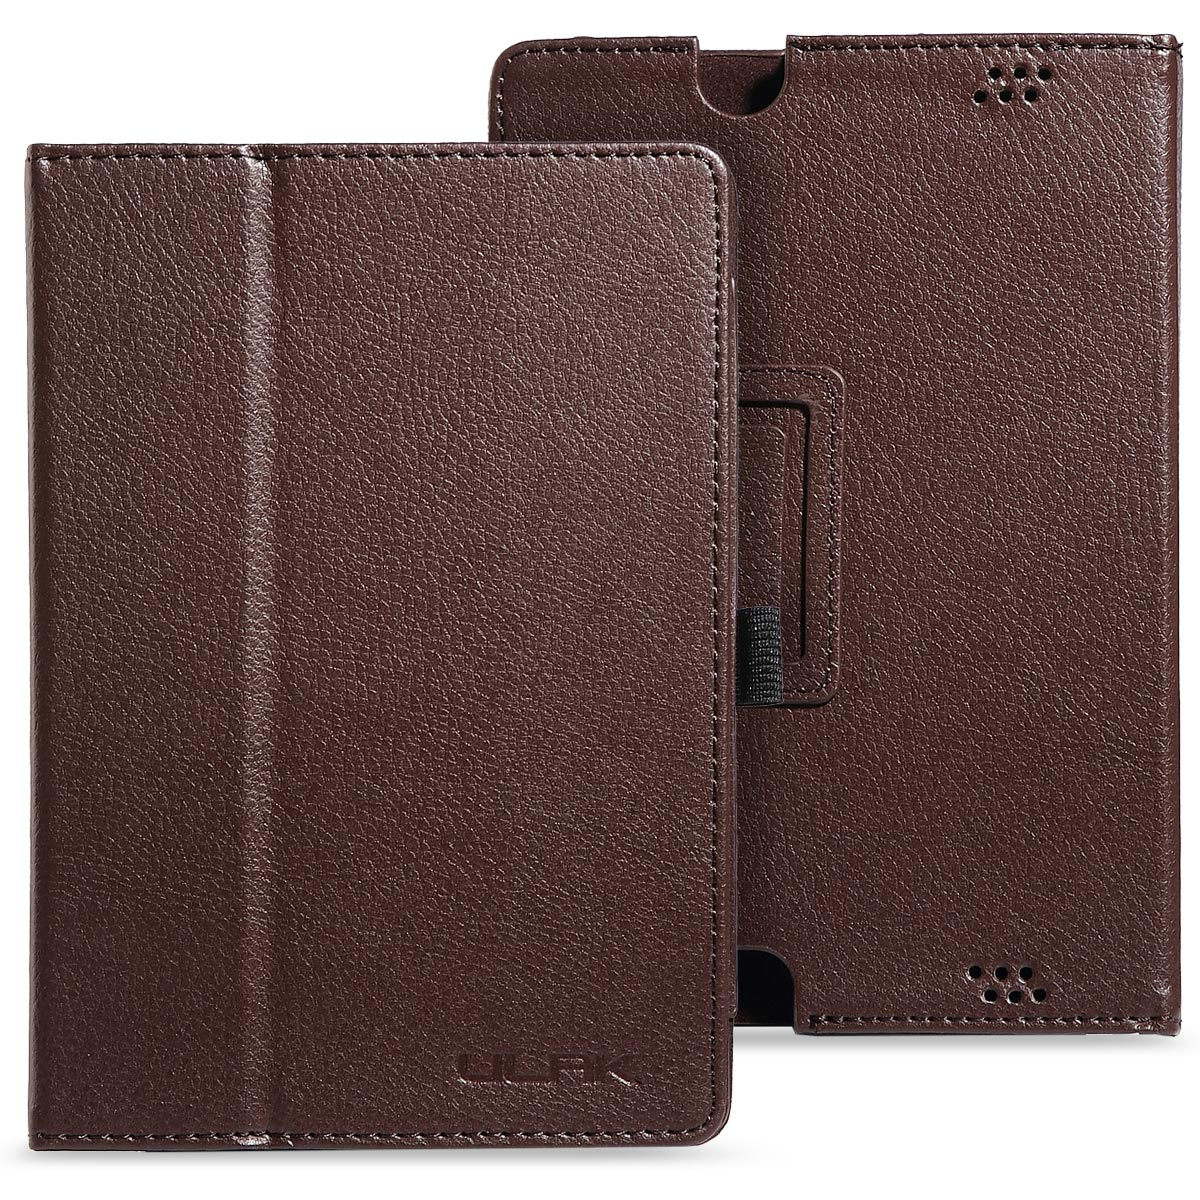 ULAK PU Leather Folio Stand Case Cover for Amazon New Kindle Fire HD 7 Inch  - 2013 Released (Previous Generation - 3rd) with Auto Sleep/Wake Feature Valentine's Day(Brown)